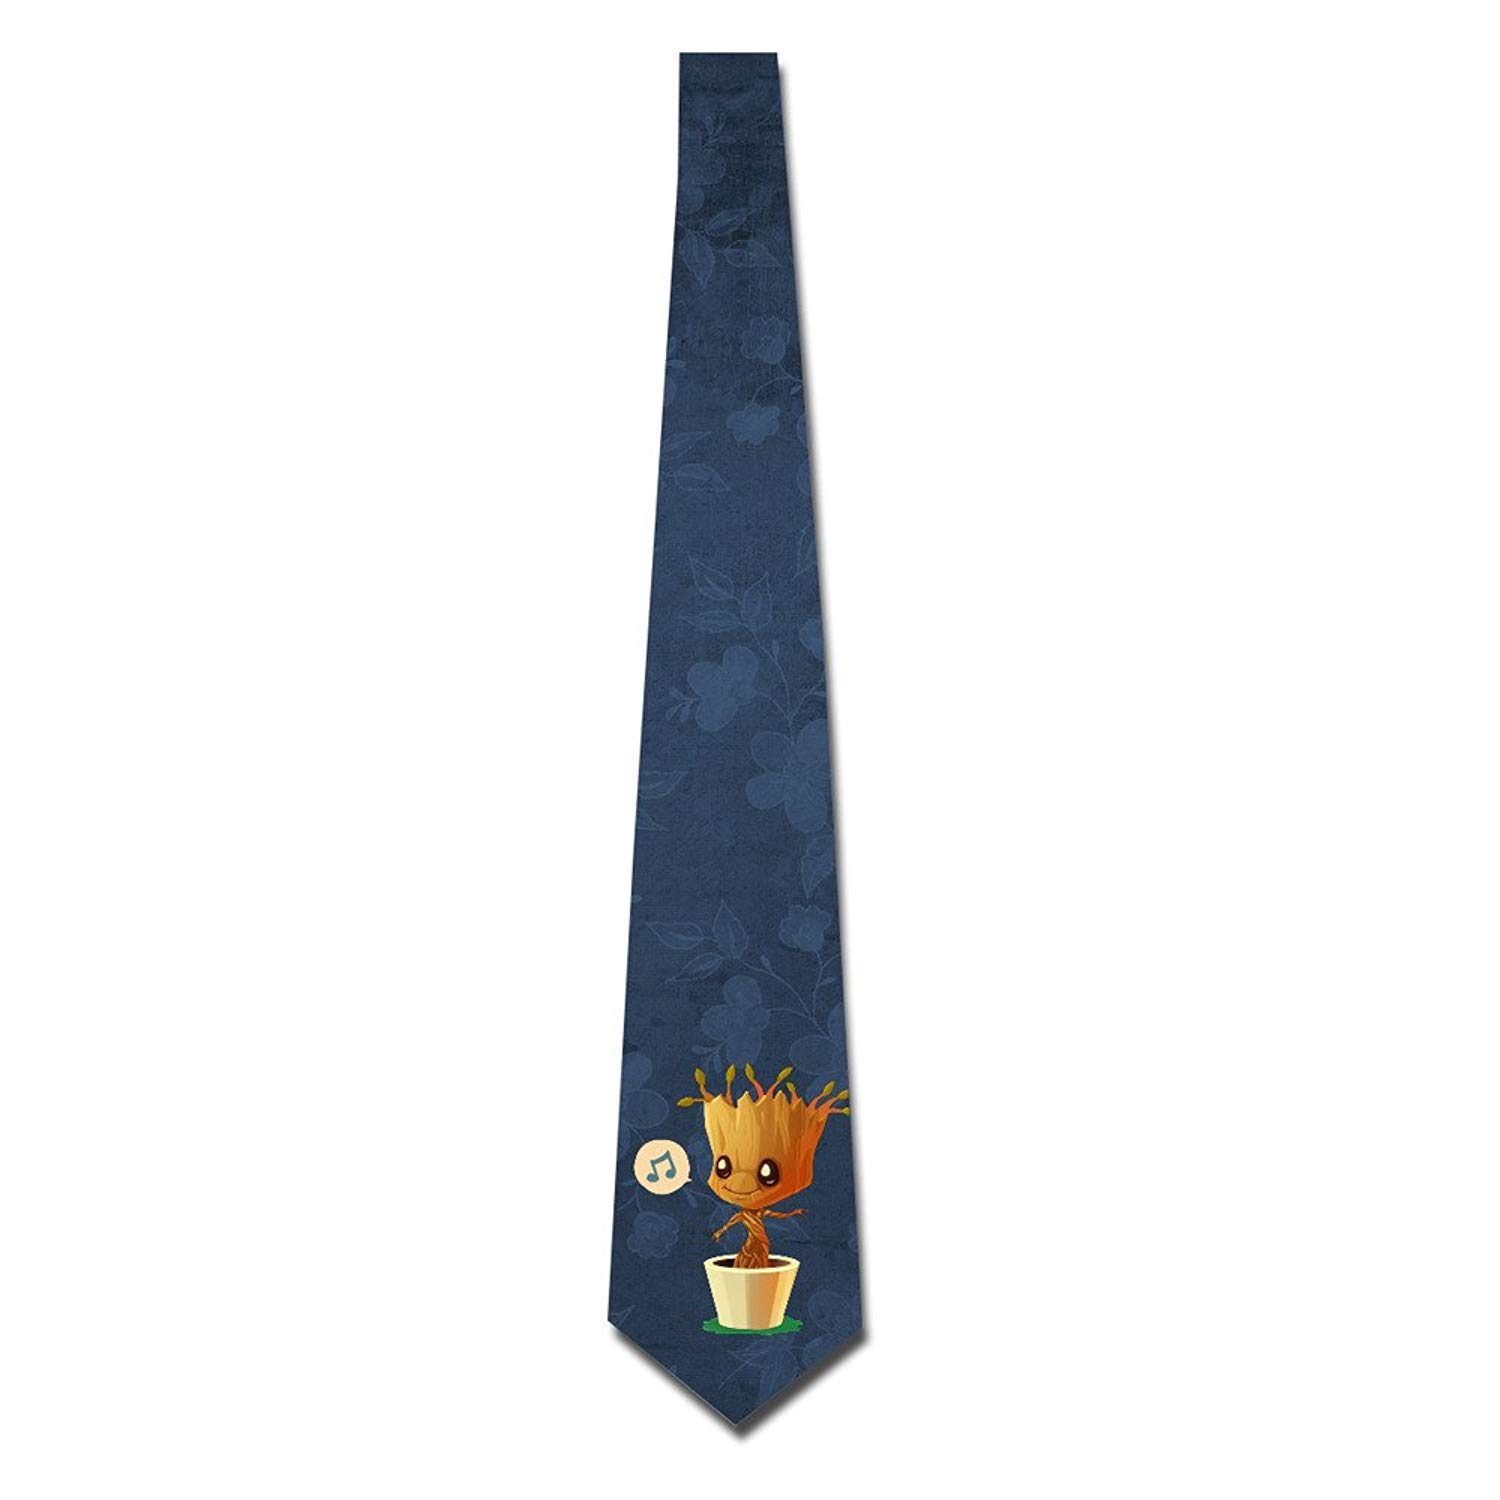 Personalized Men's Guardians Of The Galaxy Dancing Groot Fashion Tie Skinny Neckties 8723027340837